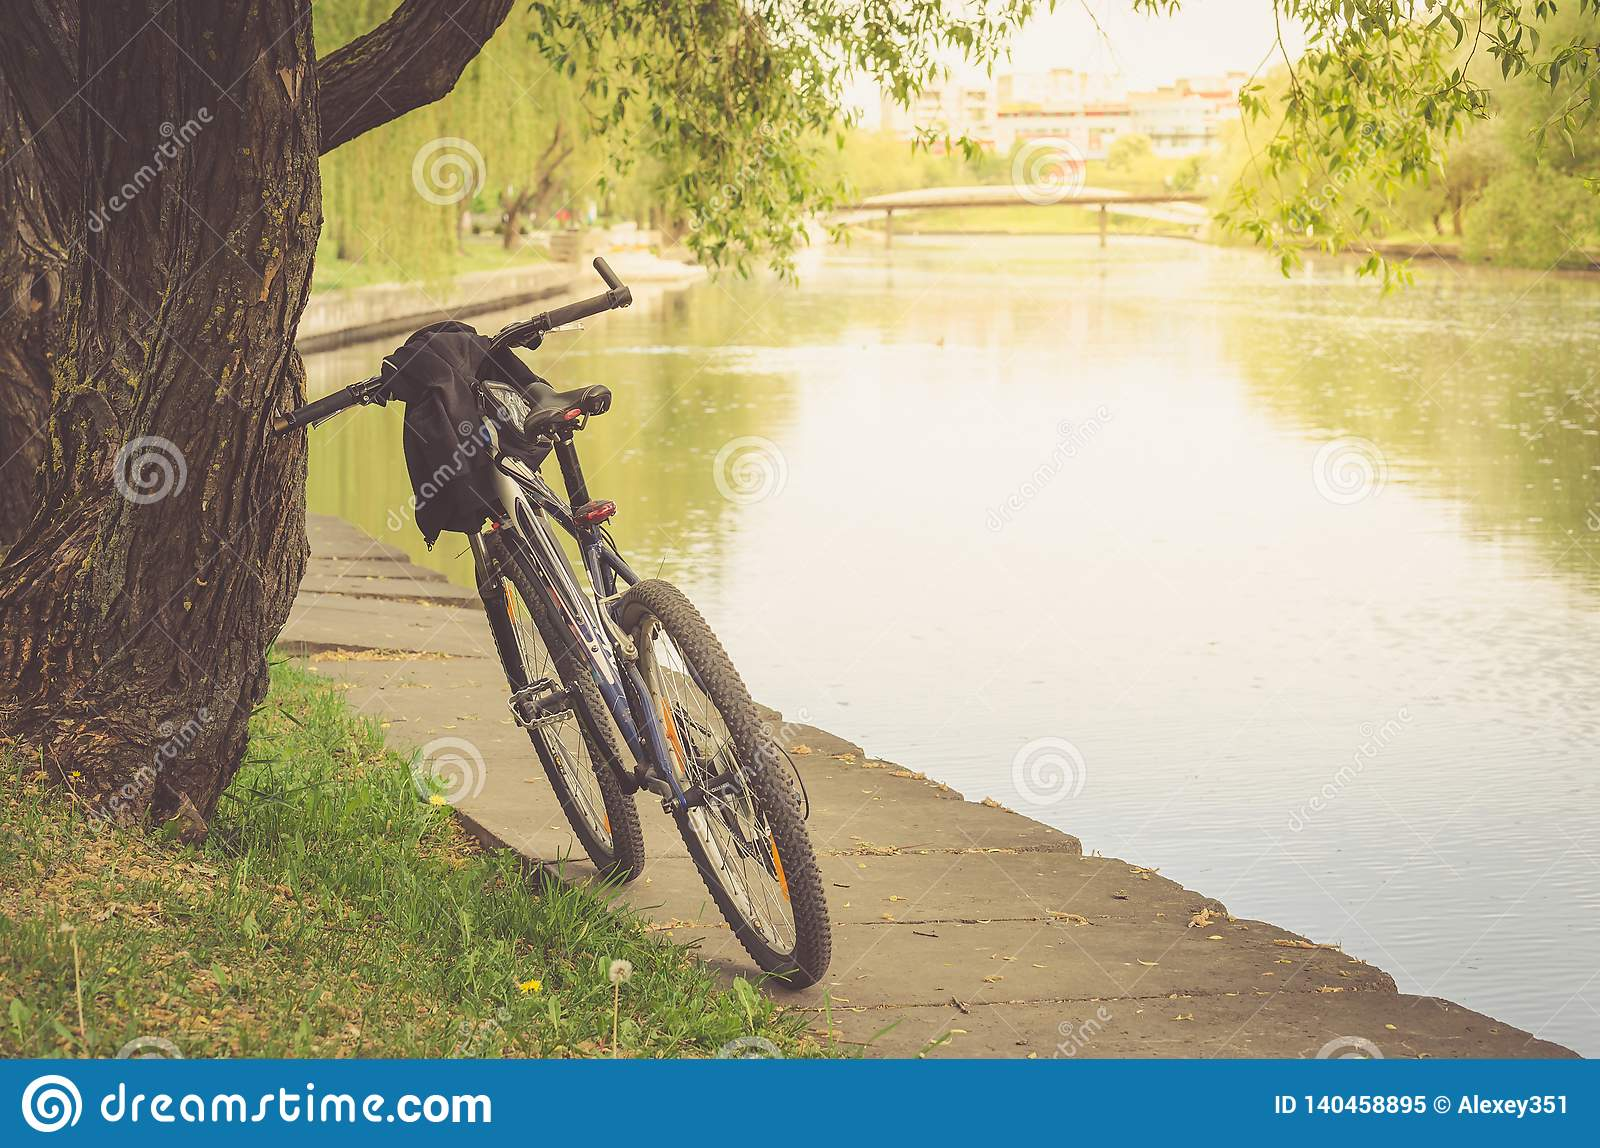 Bicycle track in park near river/walk by bicycle near the river